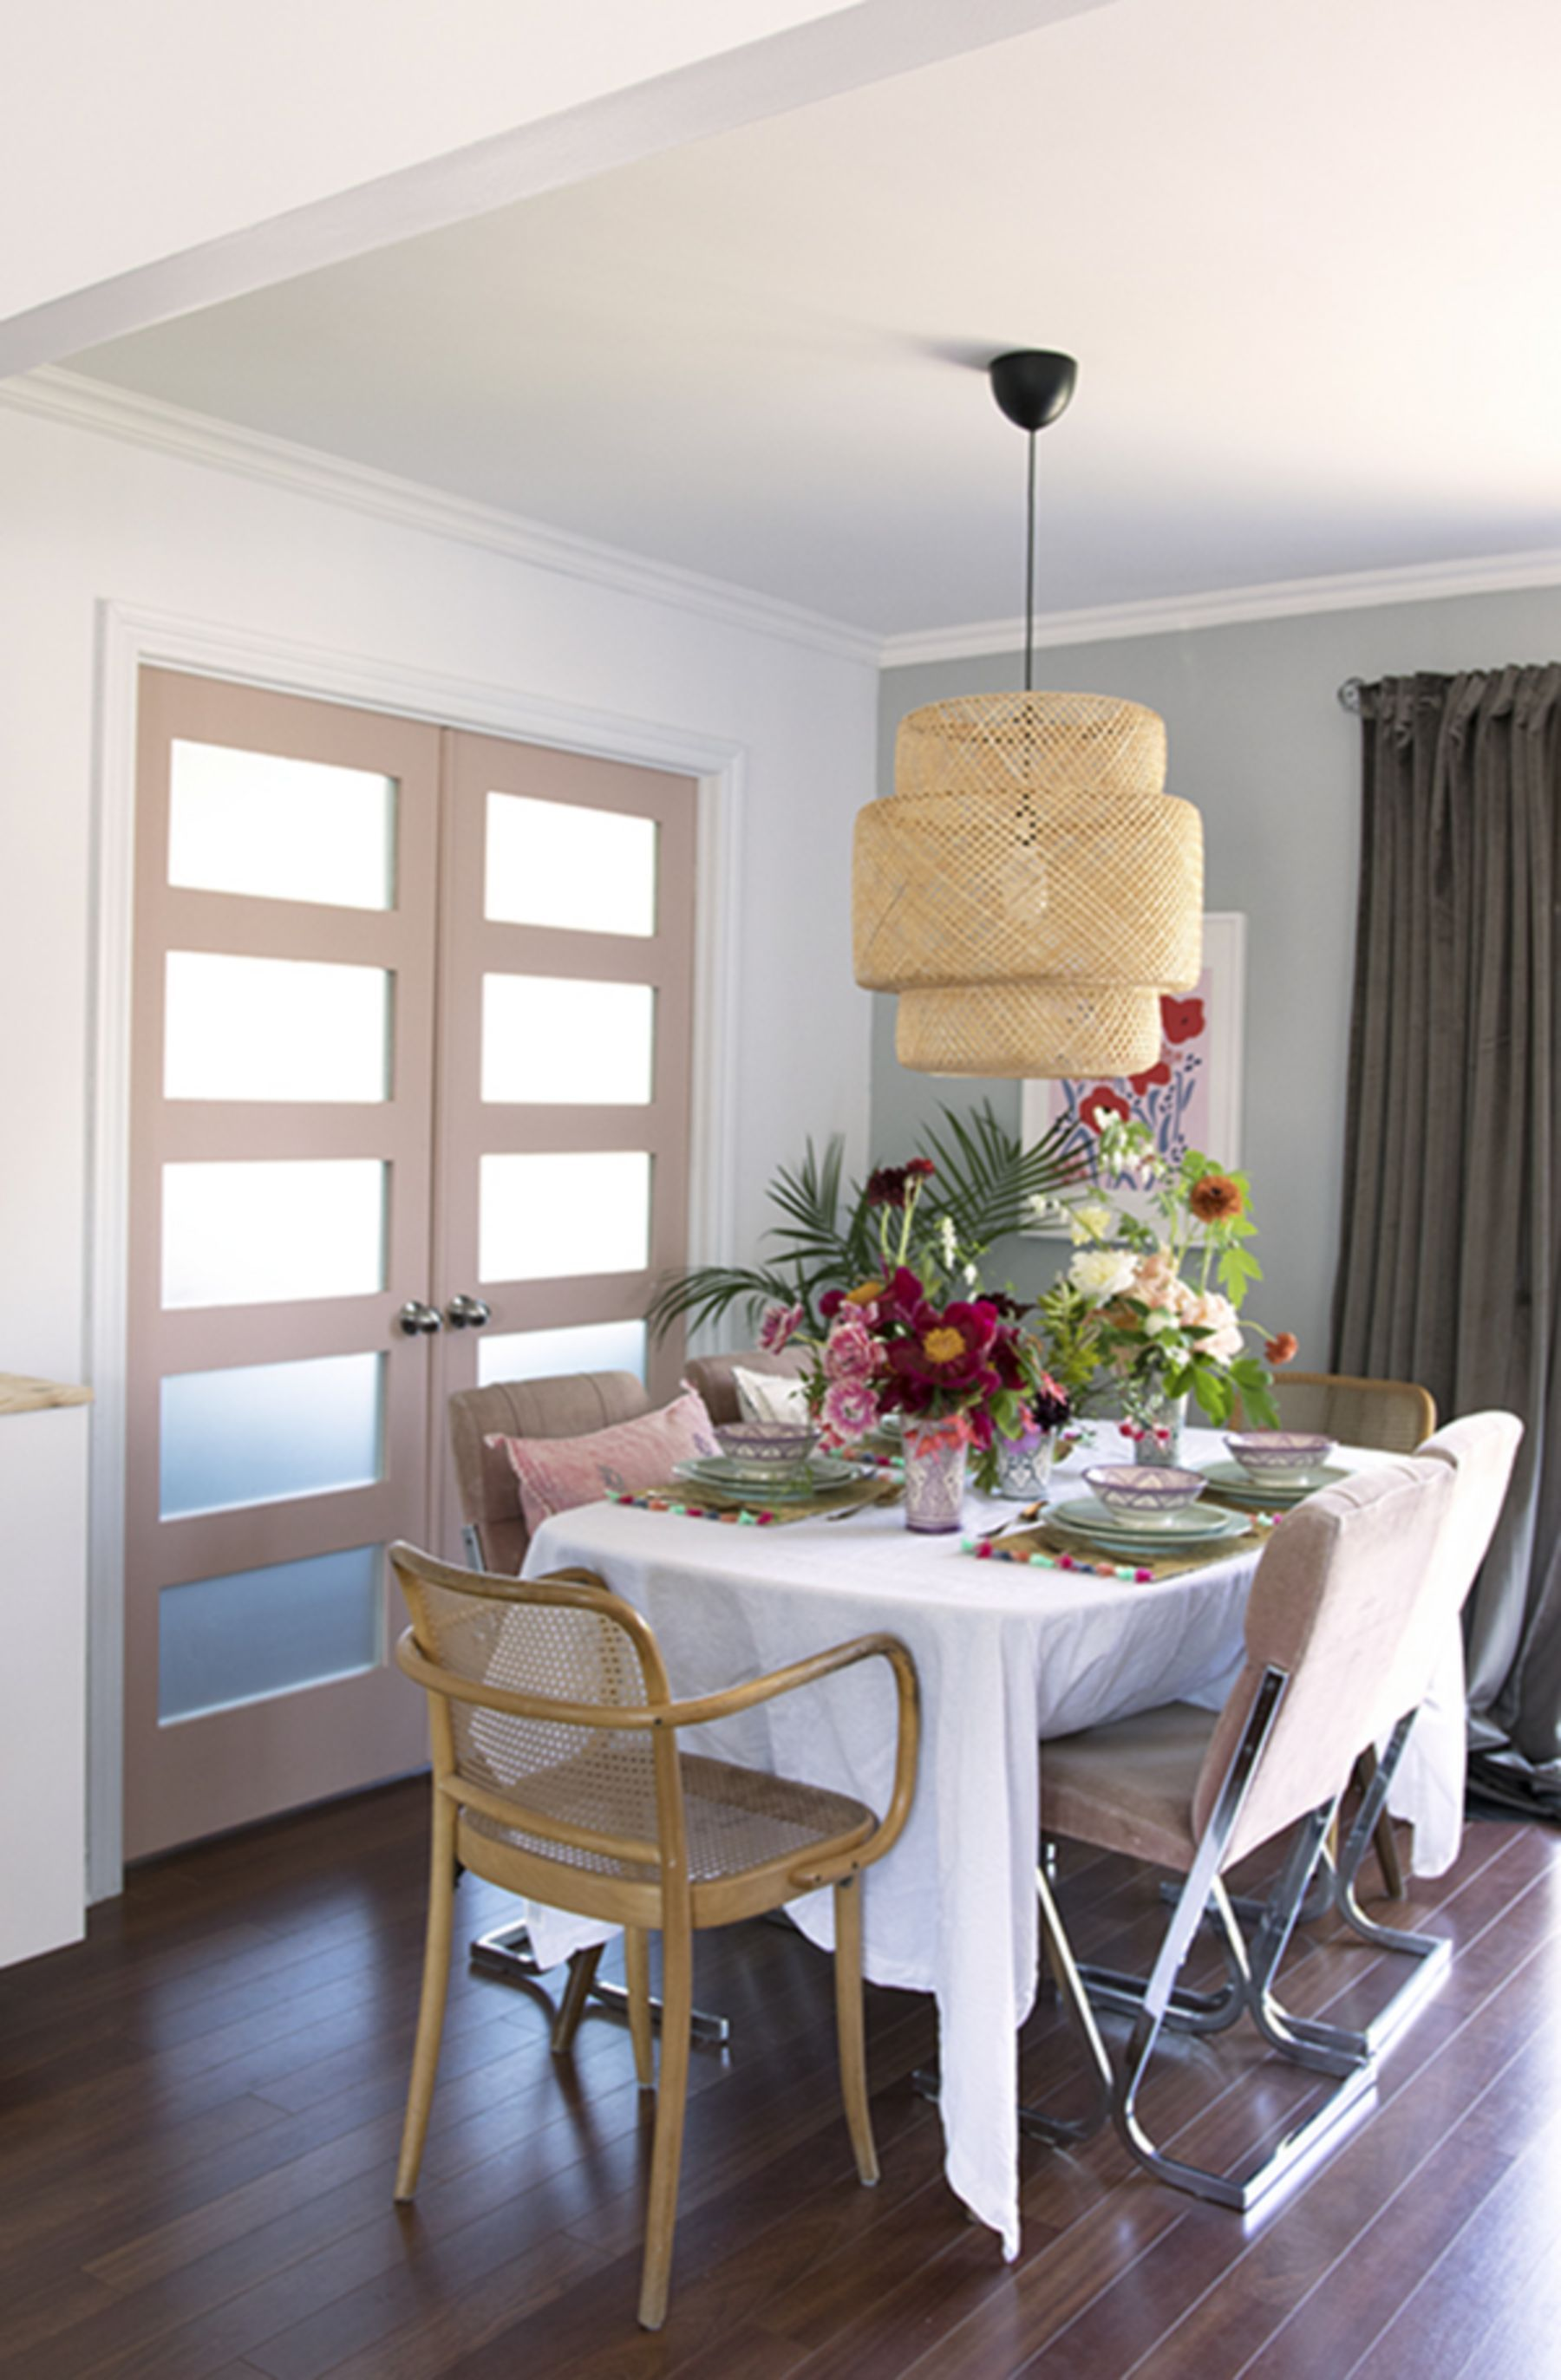 10 Awesome Dining Room Design Ideas With Low Budget Home Decor